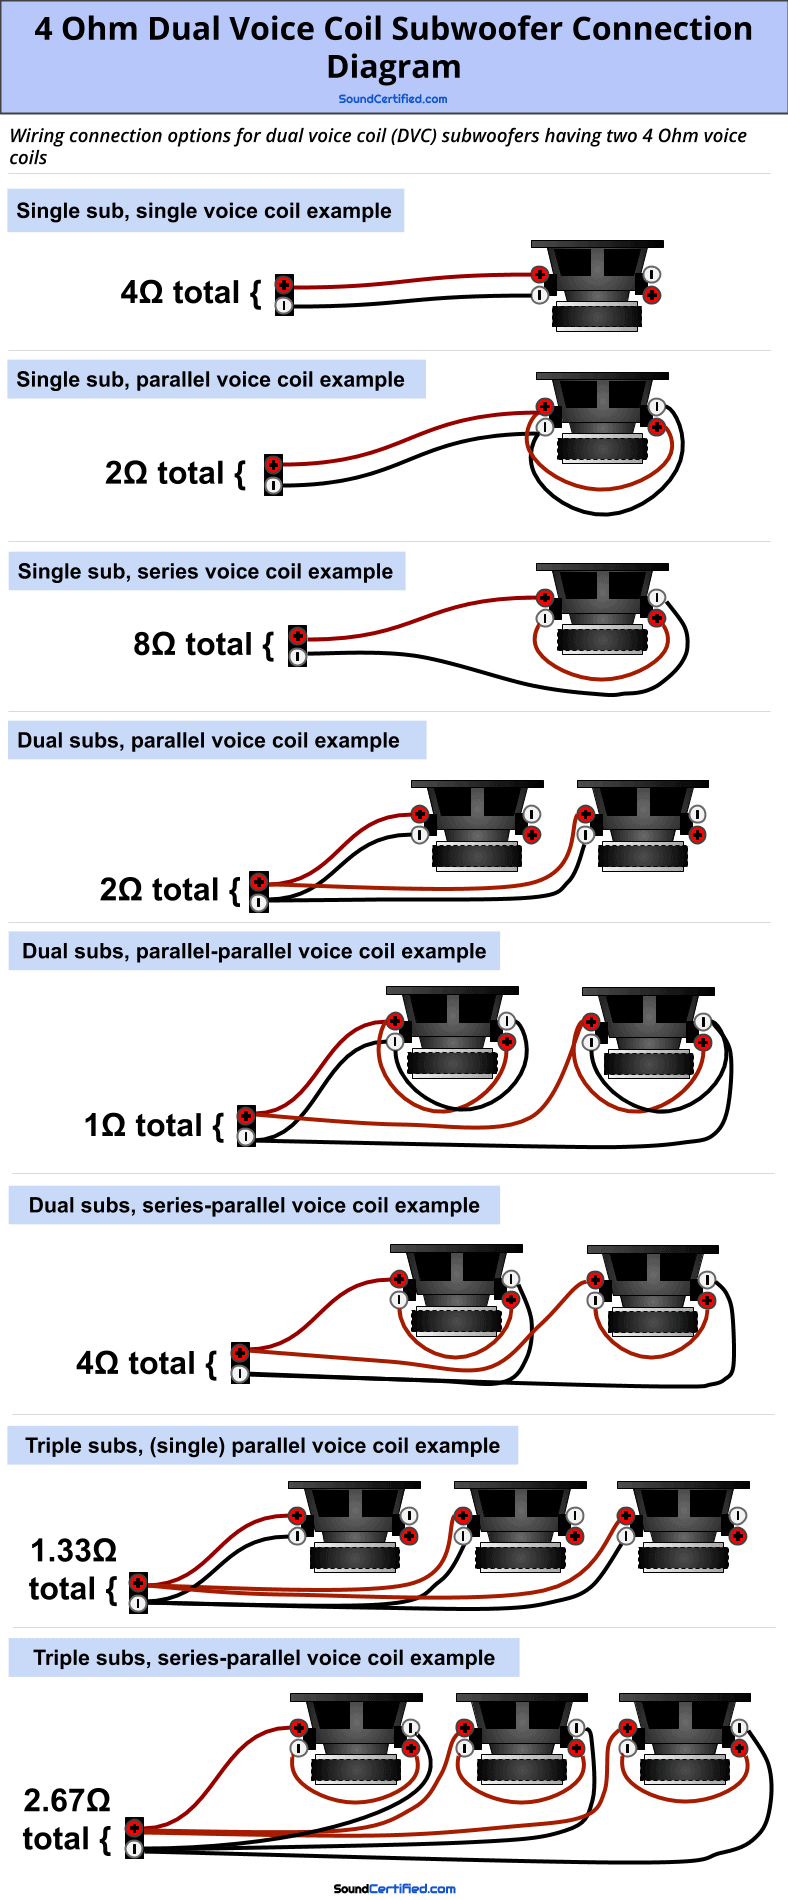 How To Wire A Dual Voice Coil Speaker + Subwoofer Wiring Diagrams | With 2 Single Voice Coil Wire Diagram For Channel Amps Subs |  | Sound Certified